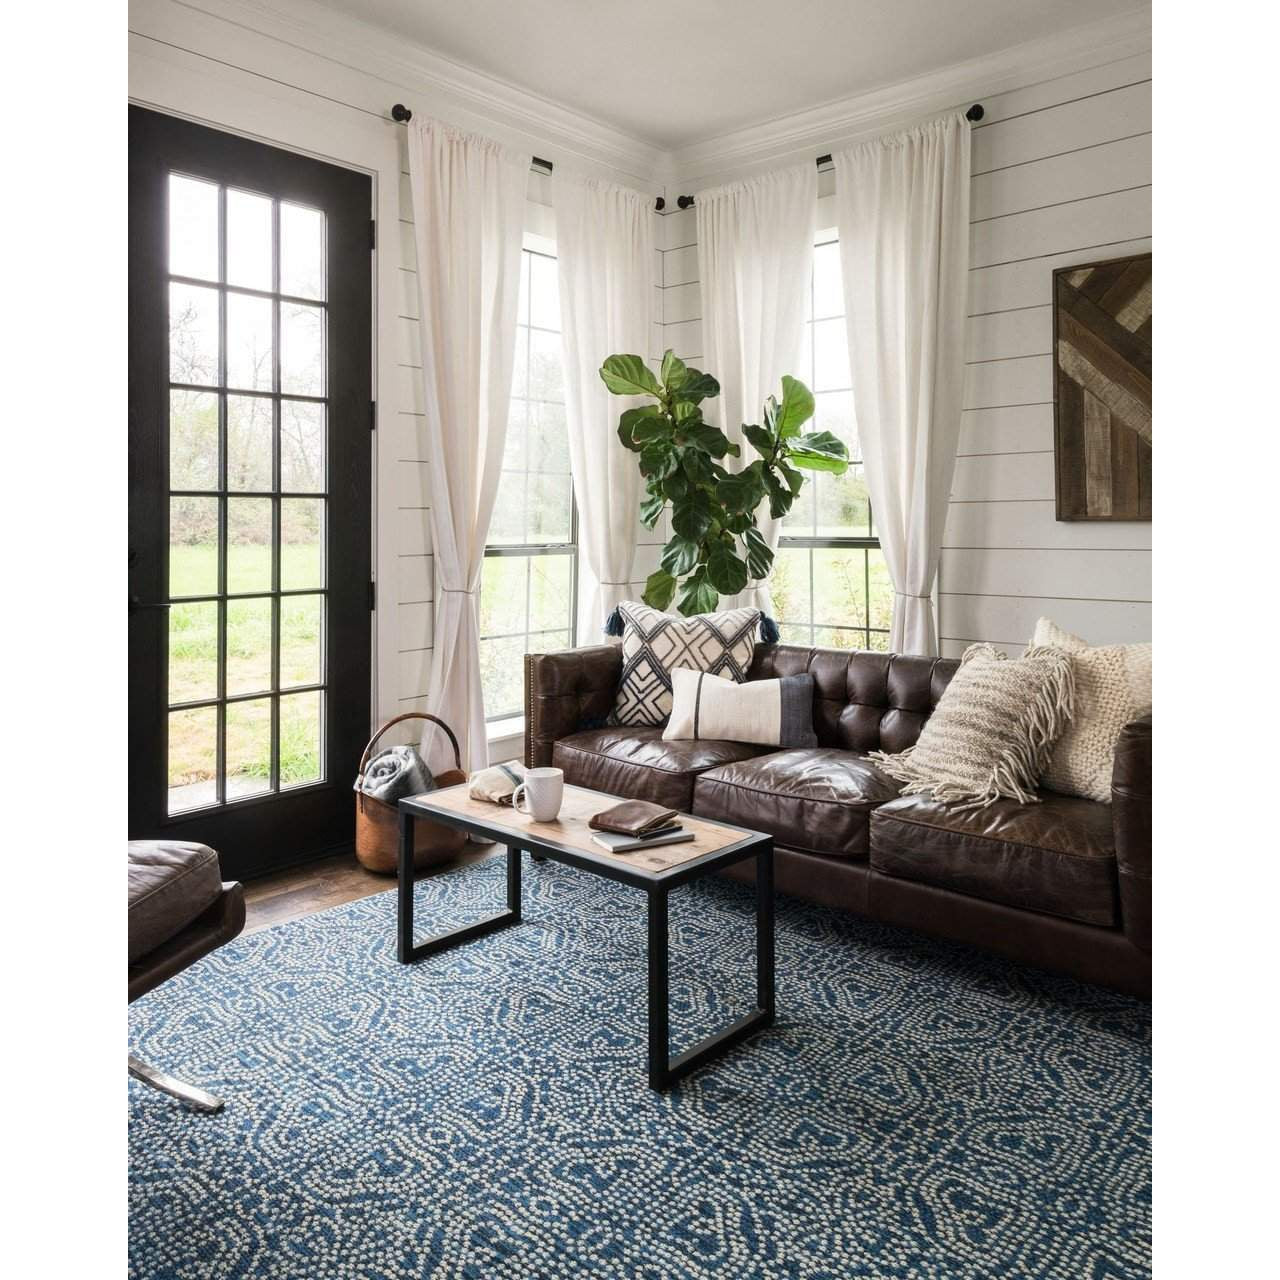 Joanna Gaines Of Magnolia Home Emmie Kay Rug Navy Cream